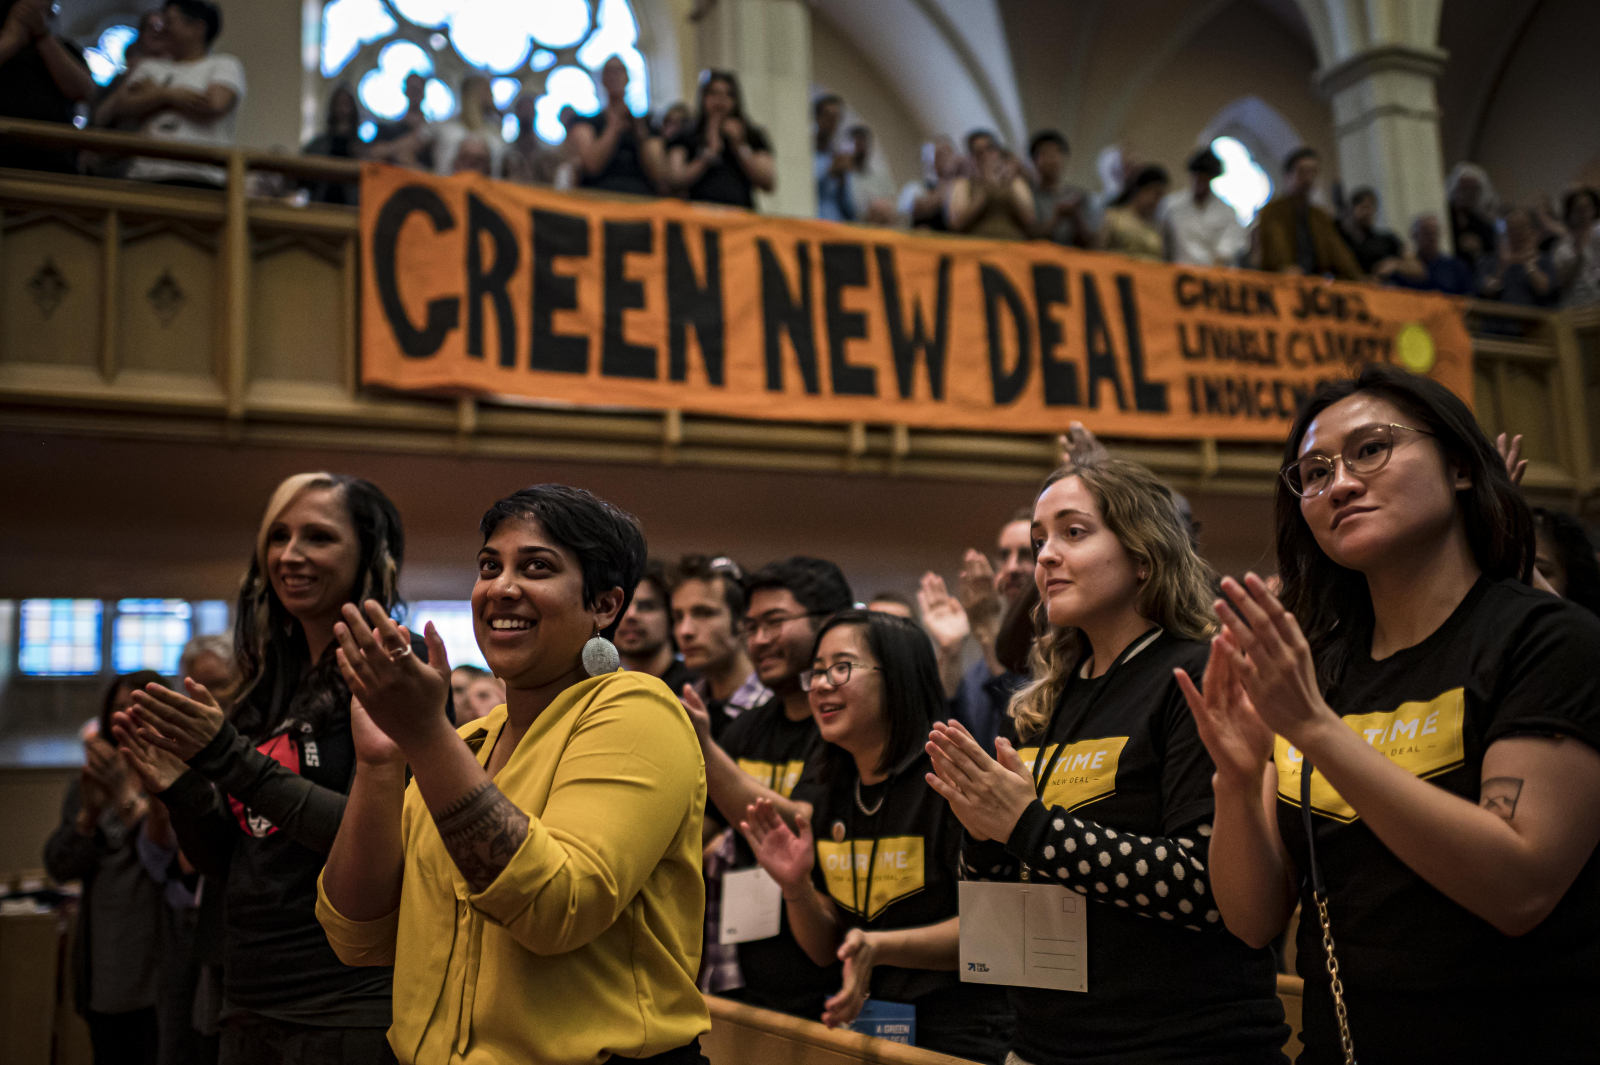 Pam Palmater, Maria Menezes, and supporters of the Our Time organization listen during the Green New Deal town hall at Bloor Street United Church in Toronto on June 11, 2019.